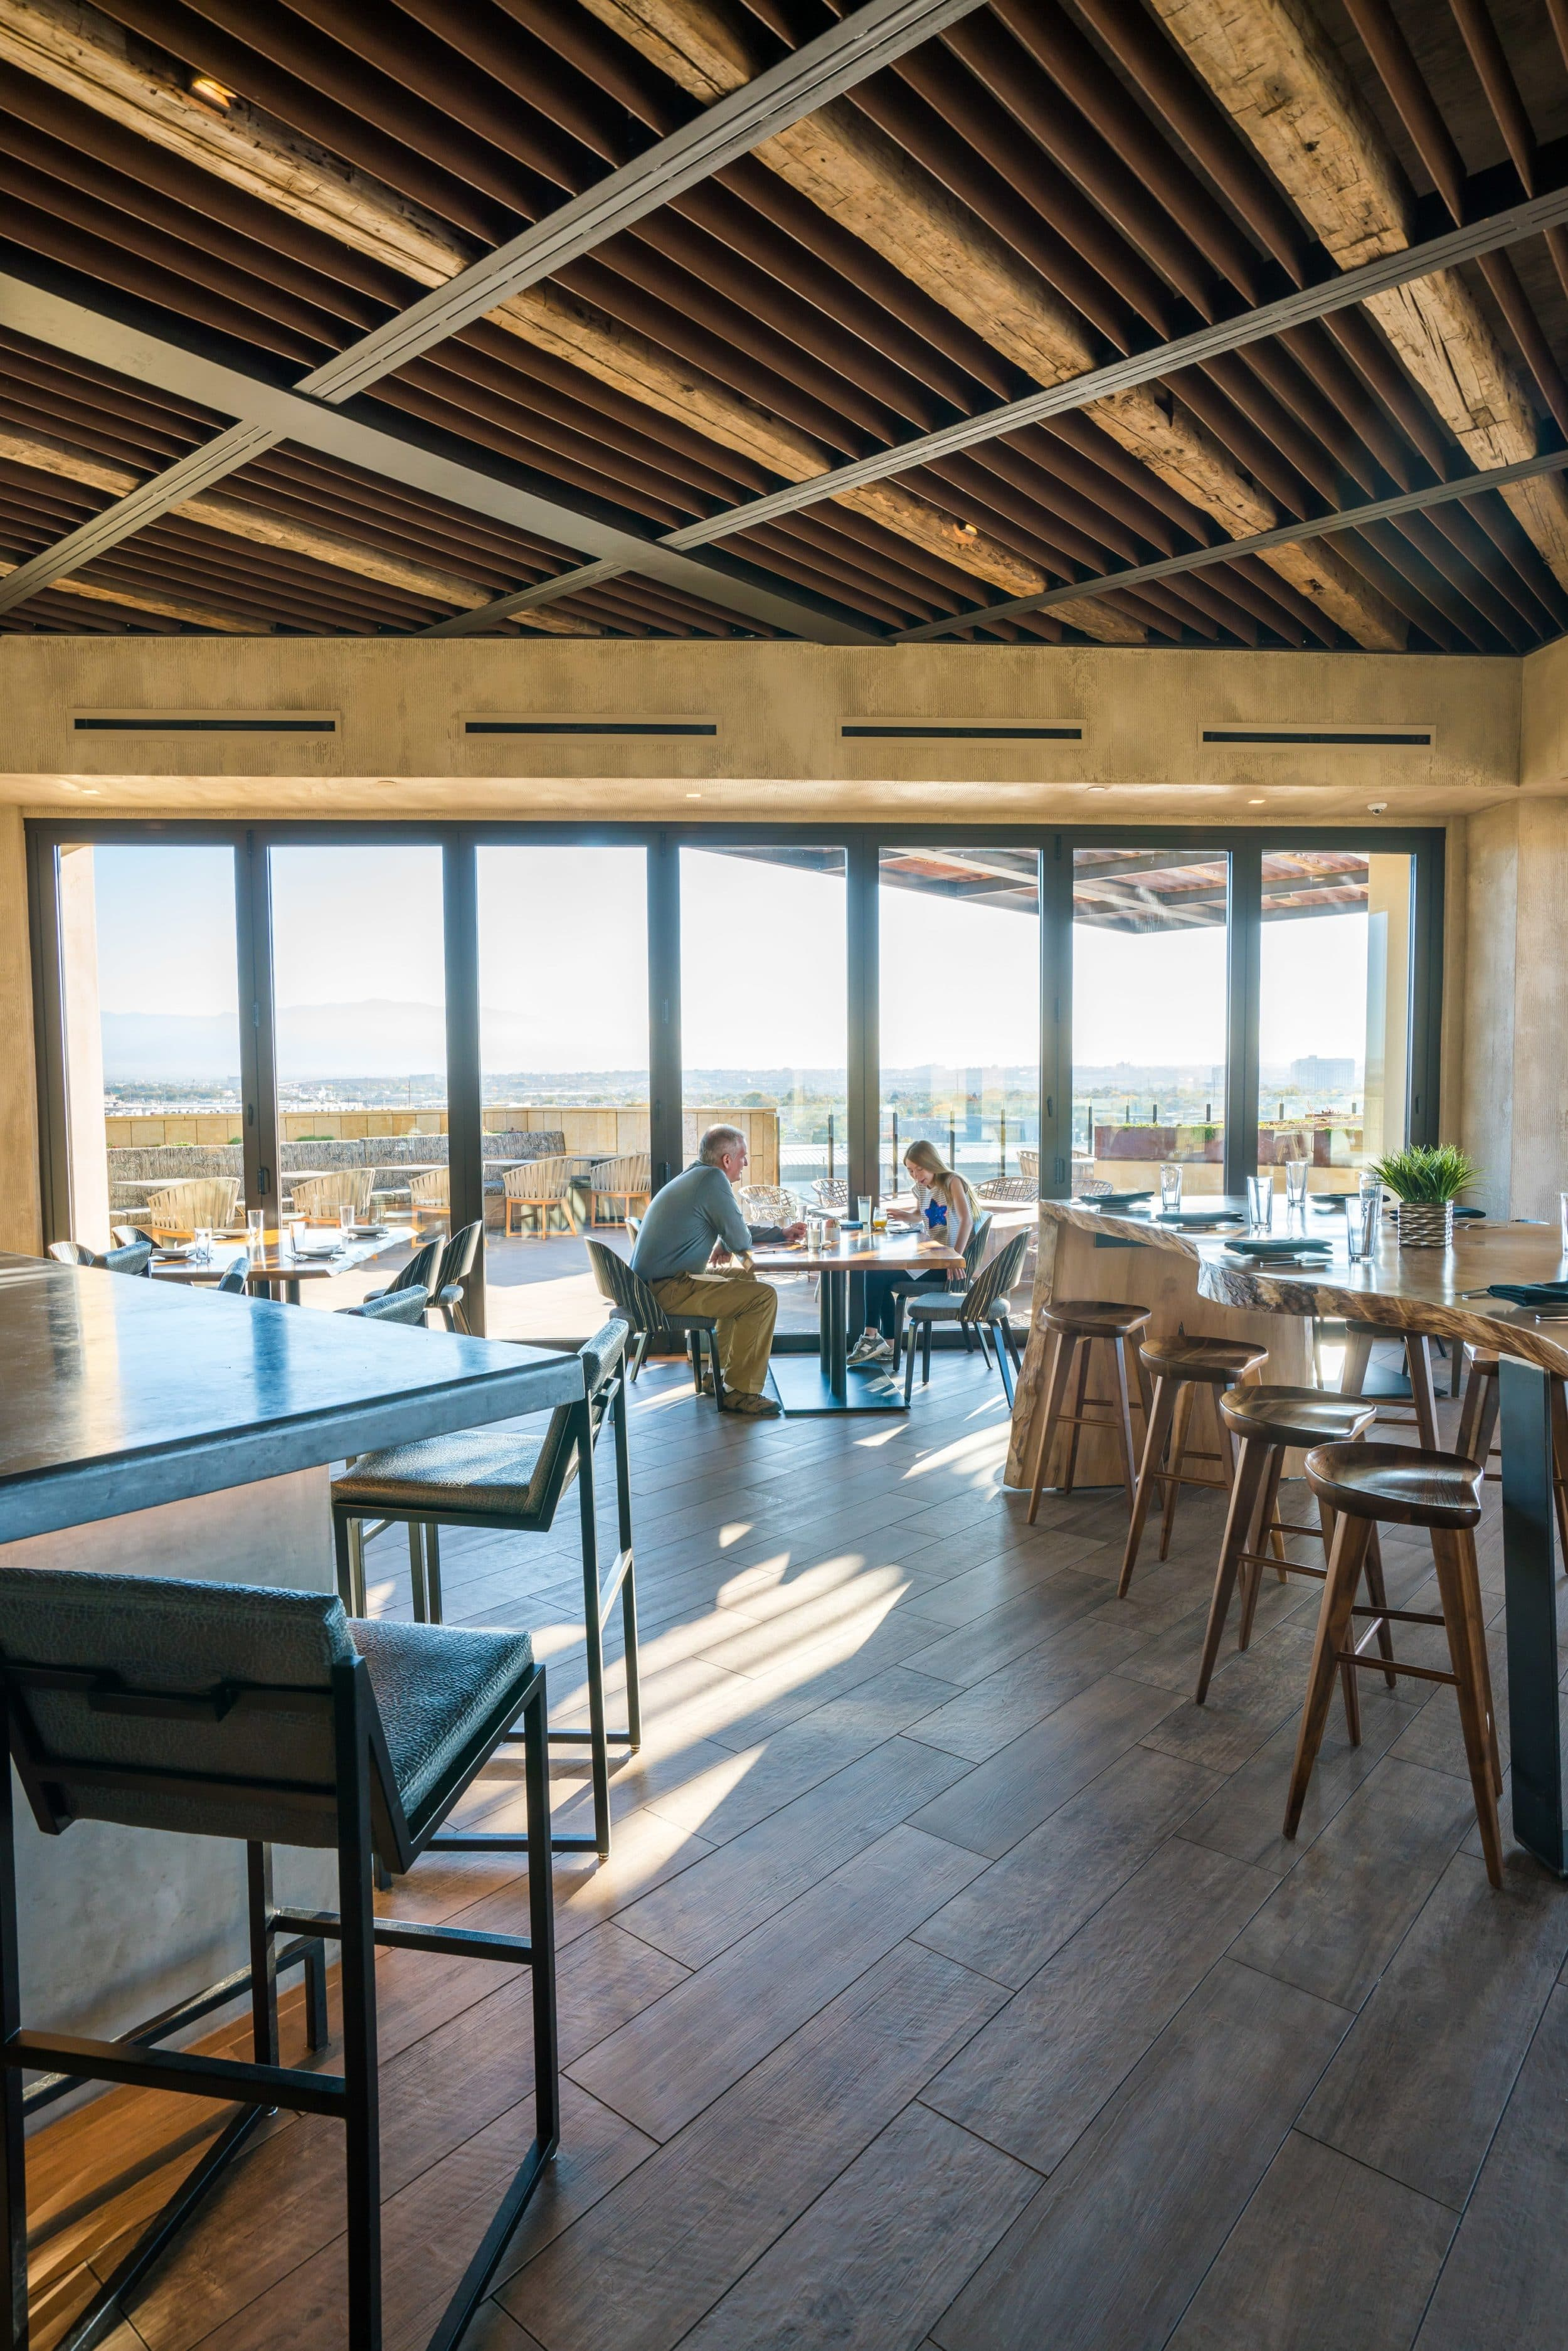 The rooftop restaurant at Hotel Chaco in Albuquerque.